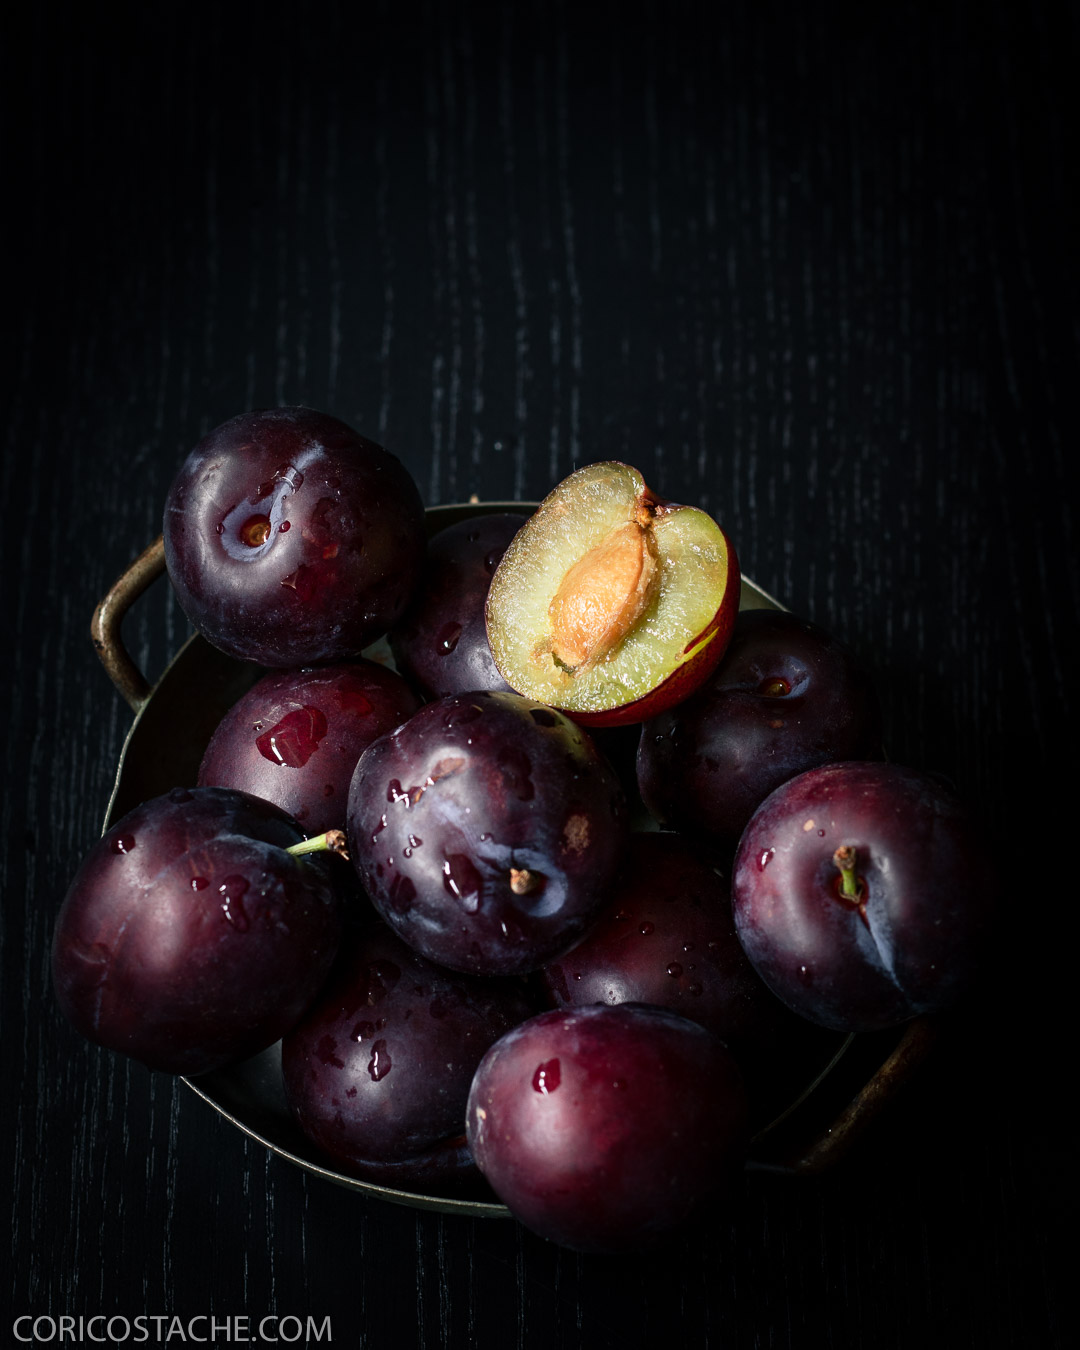 plum dark image food photography